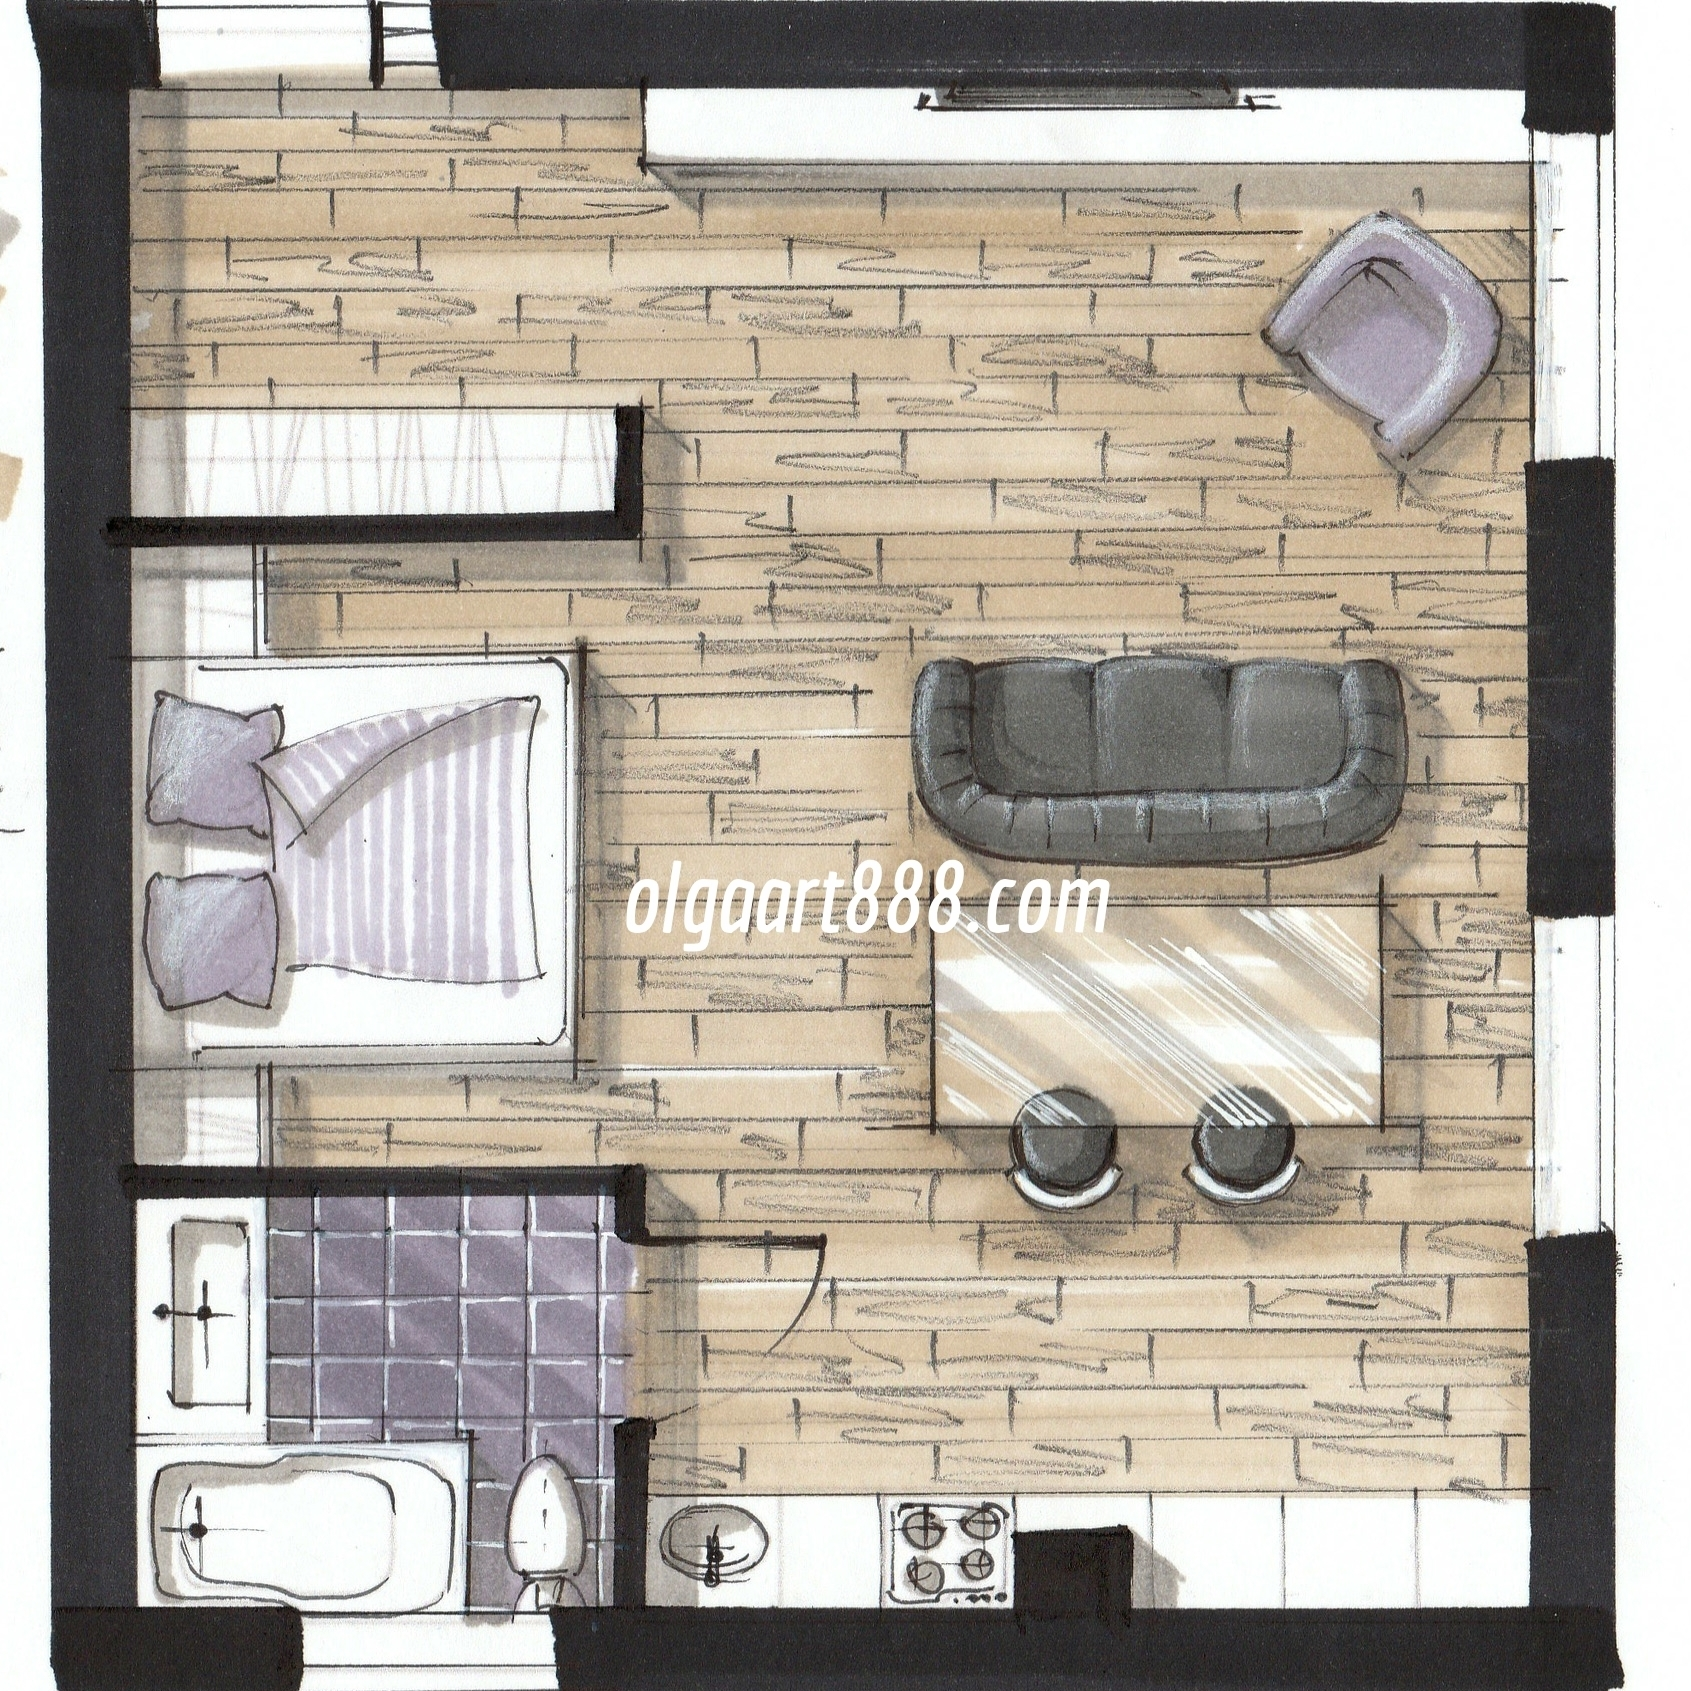 Interior design drawing with markers  my video courses  book  blog     IMG 20160314 0005 jpg